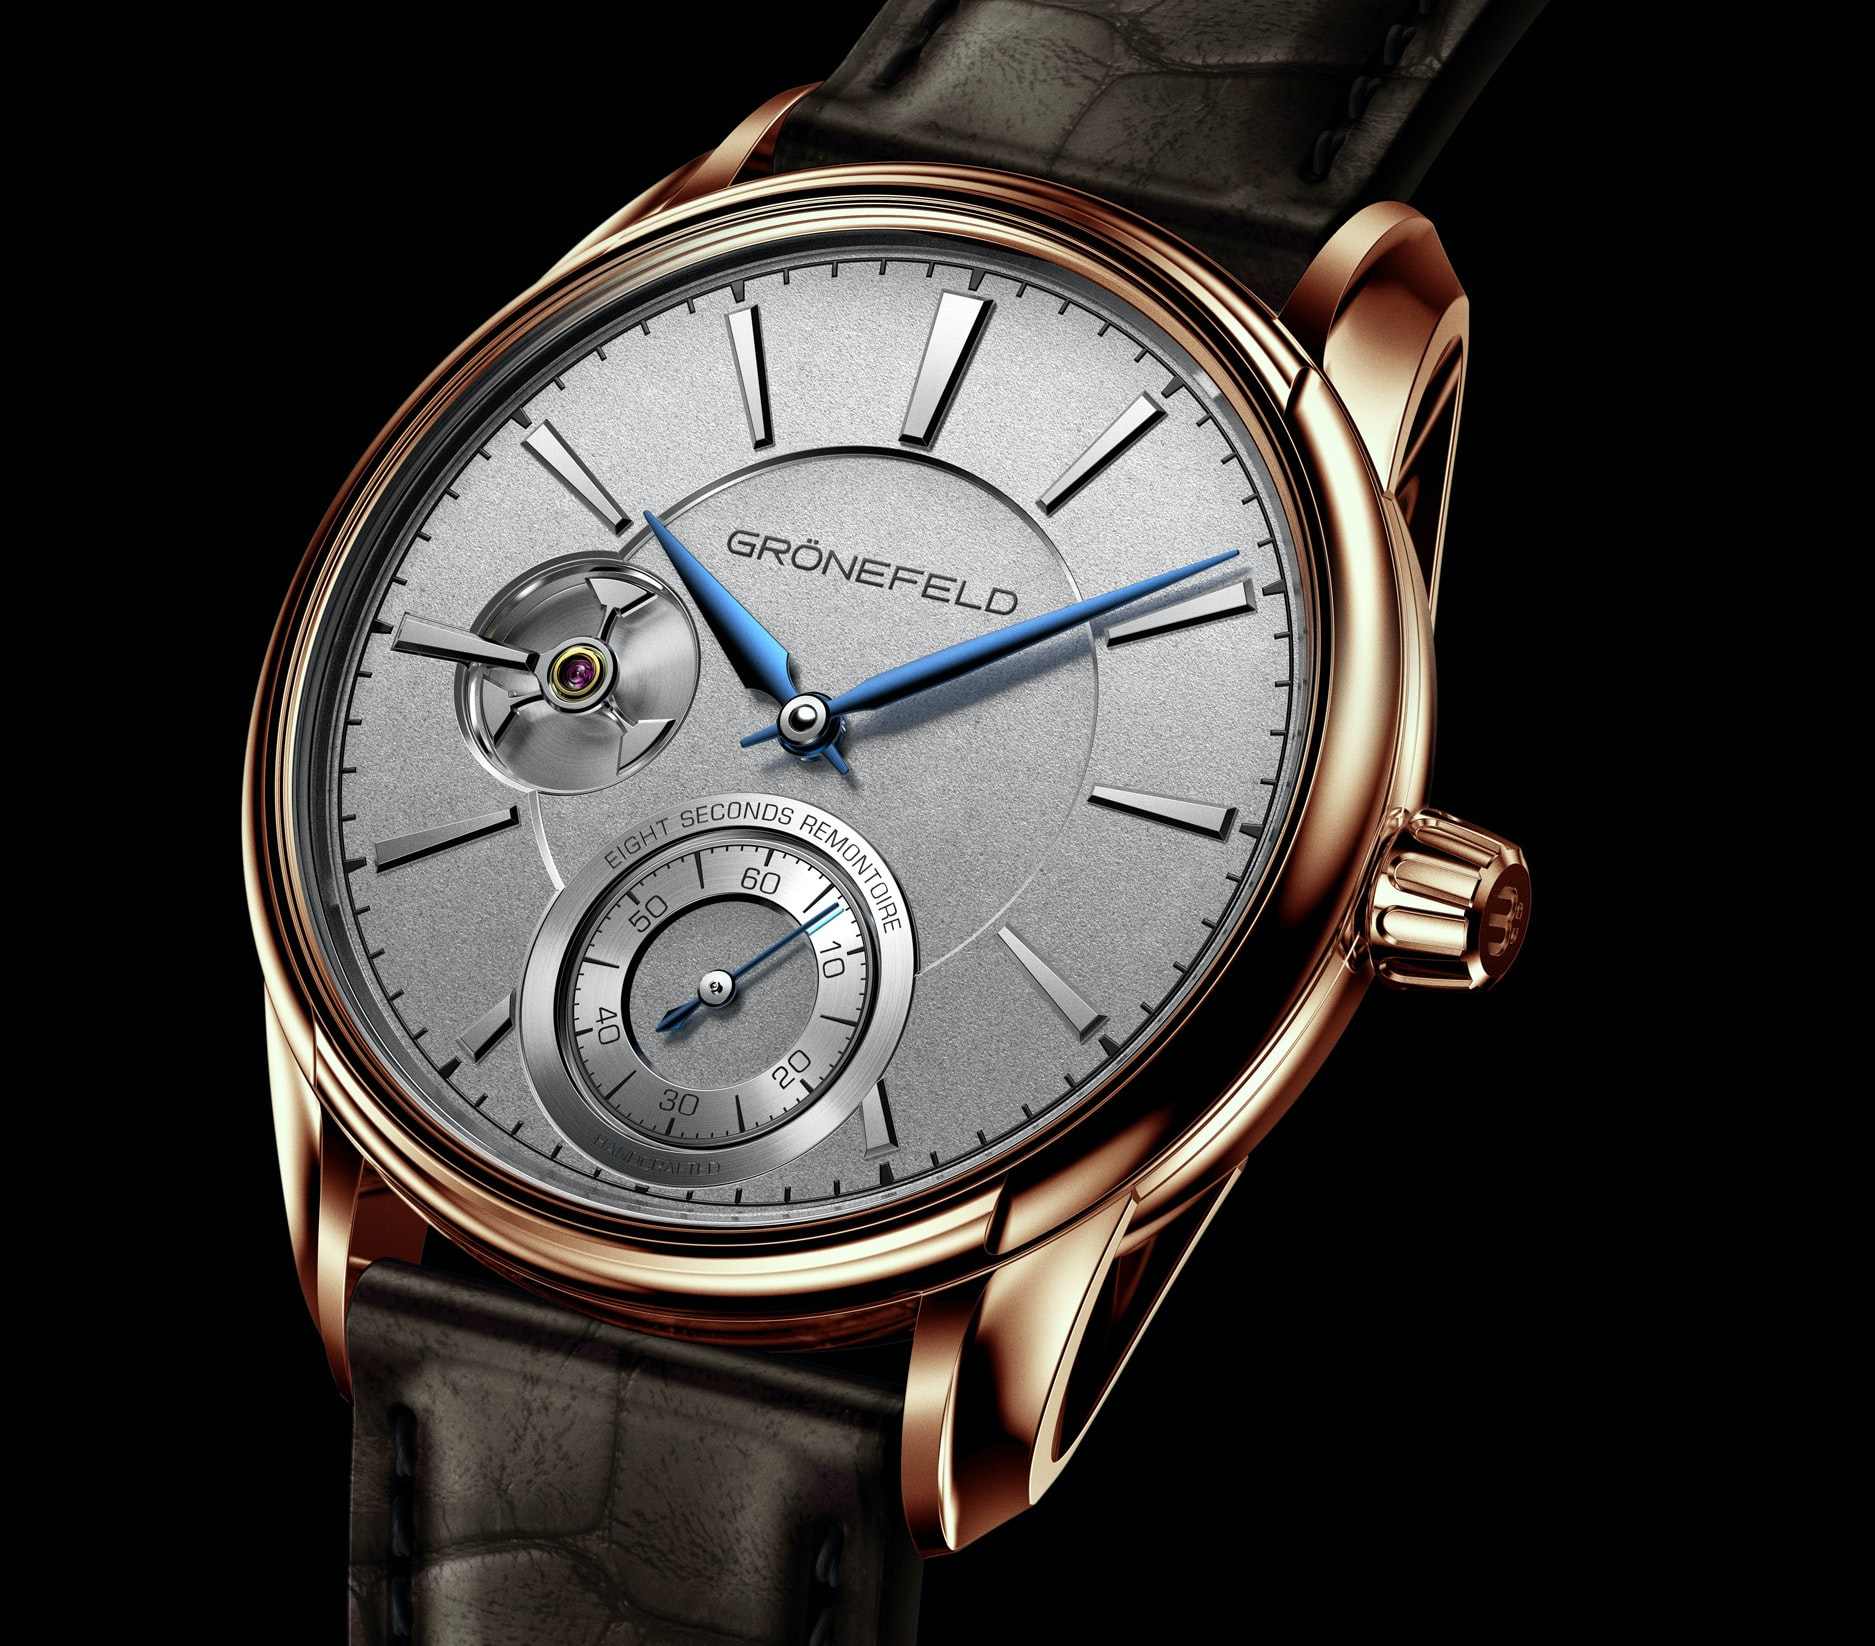 Introducing: The Grnefeld 1941 Remontoire, Inspired By A Church Clock In The Grnefeld Family's Care For Two Generations Introducing: The Grnefeld 1941 Remontoire, Inspired By A Church Clock In The Grnefeld Family's Care For Two Generations 66